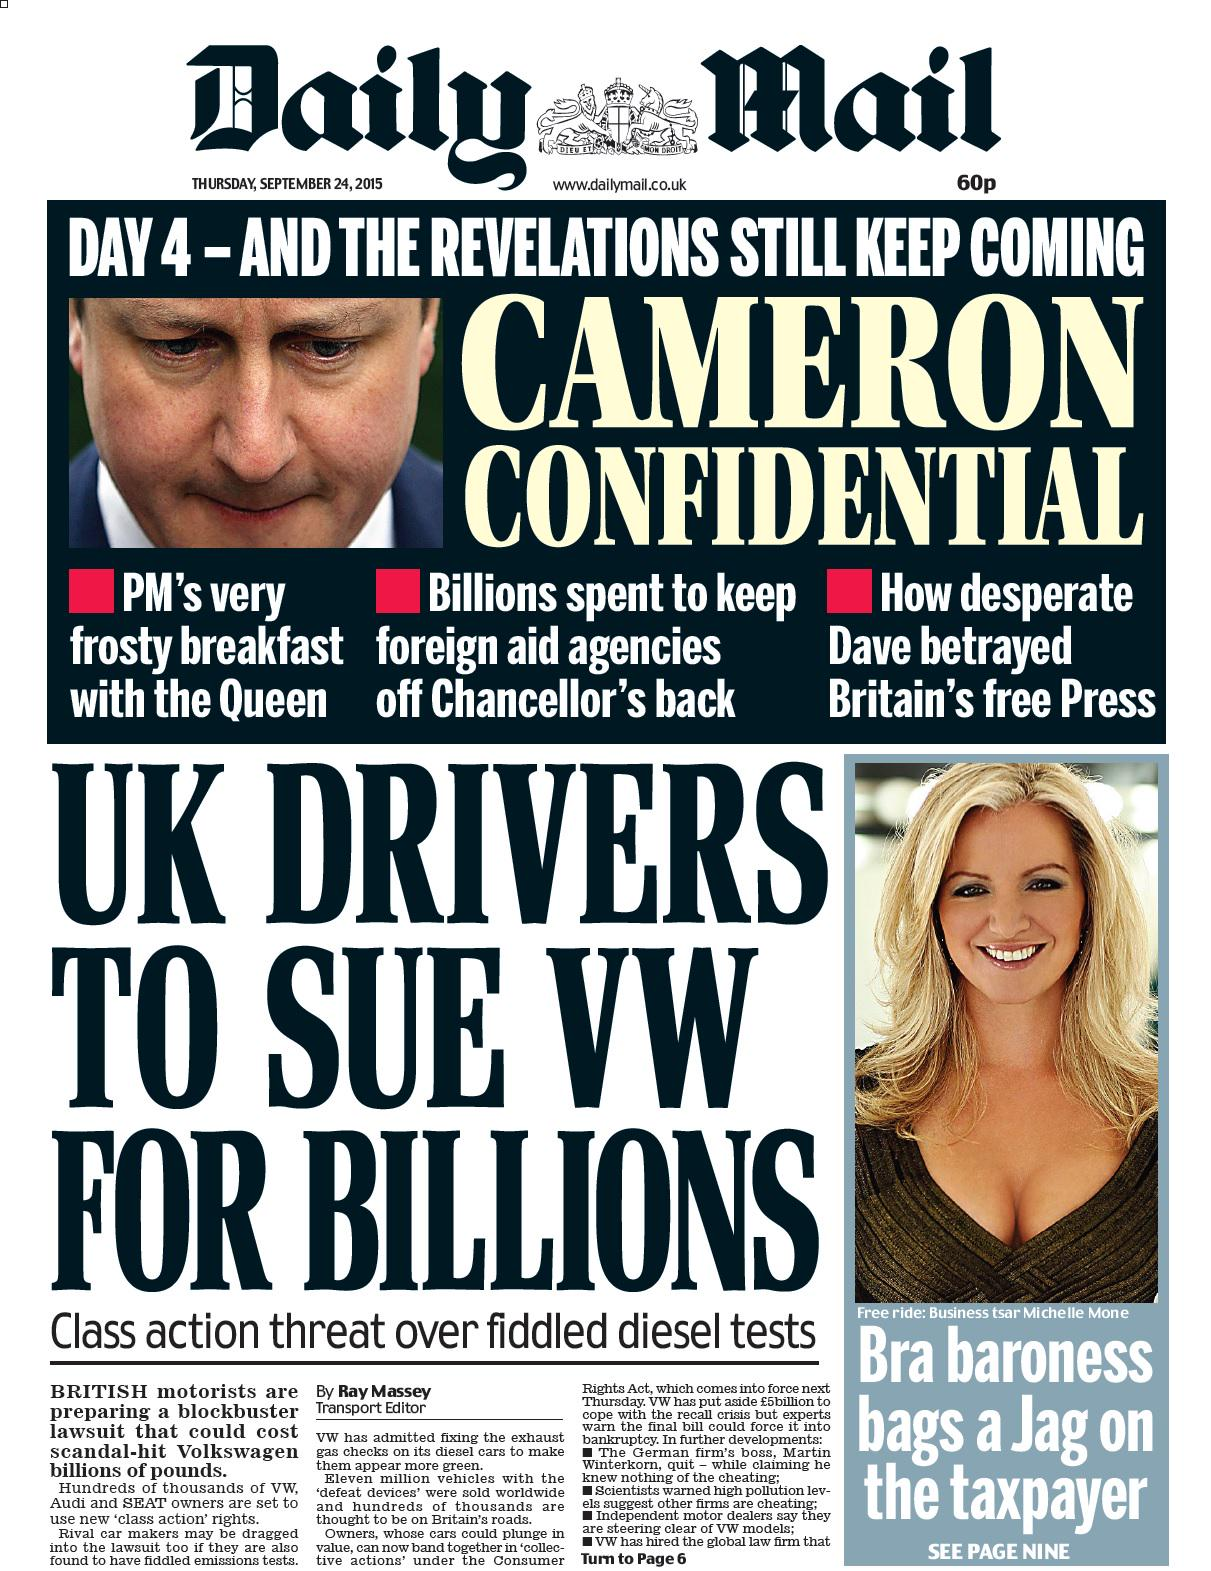 Last night, editor-in-chief paul dacre said: my warmest congratulations to the mail on sunday